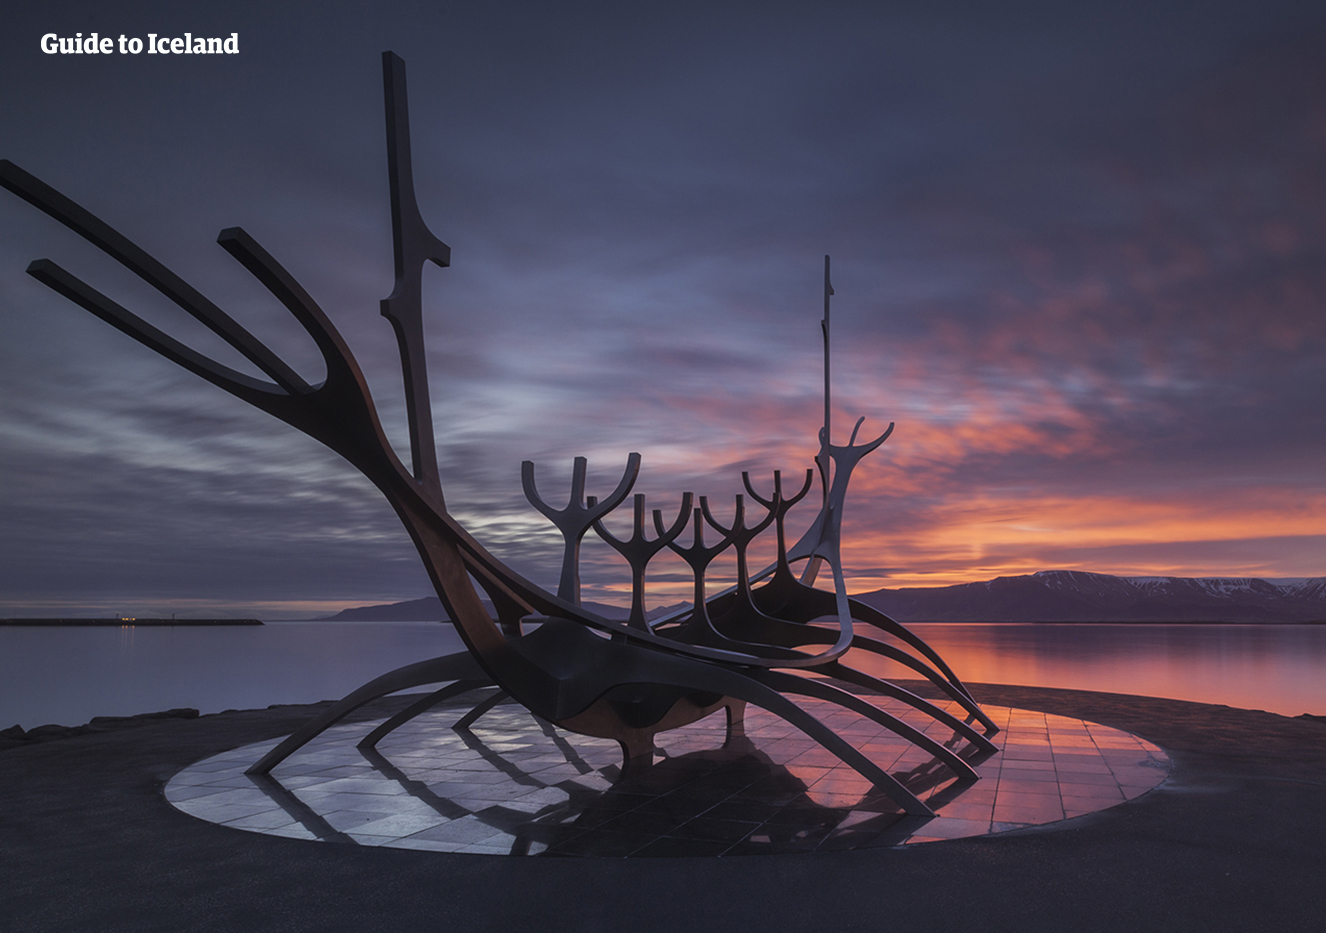 The Sun Voyager represents Iceland's spirit of adventure.